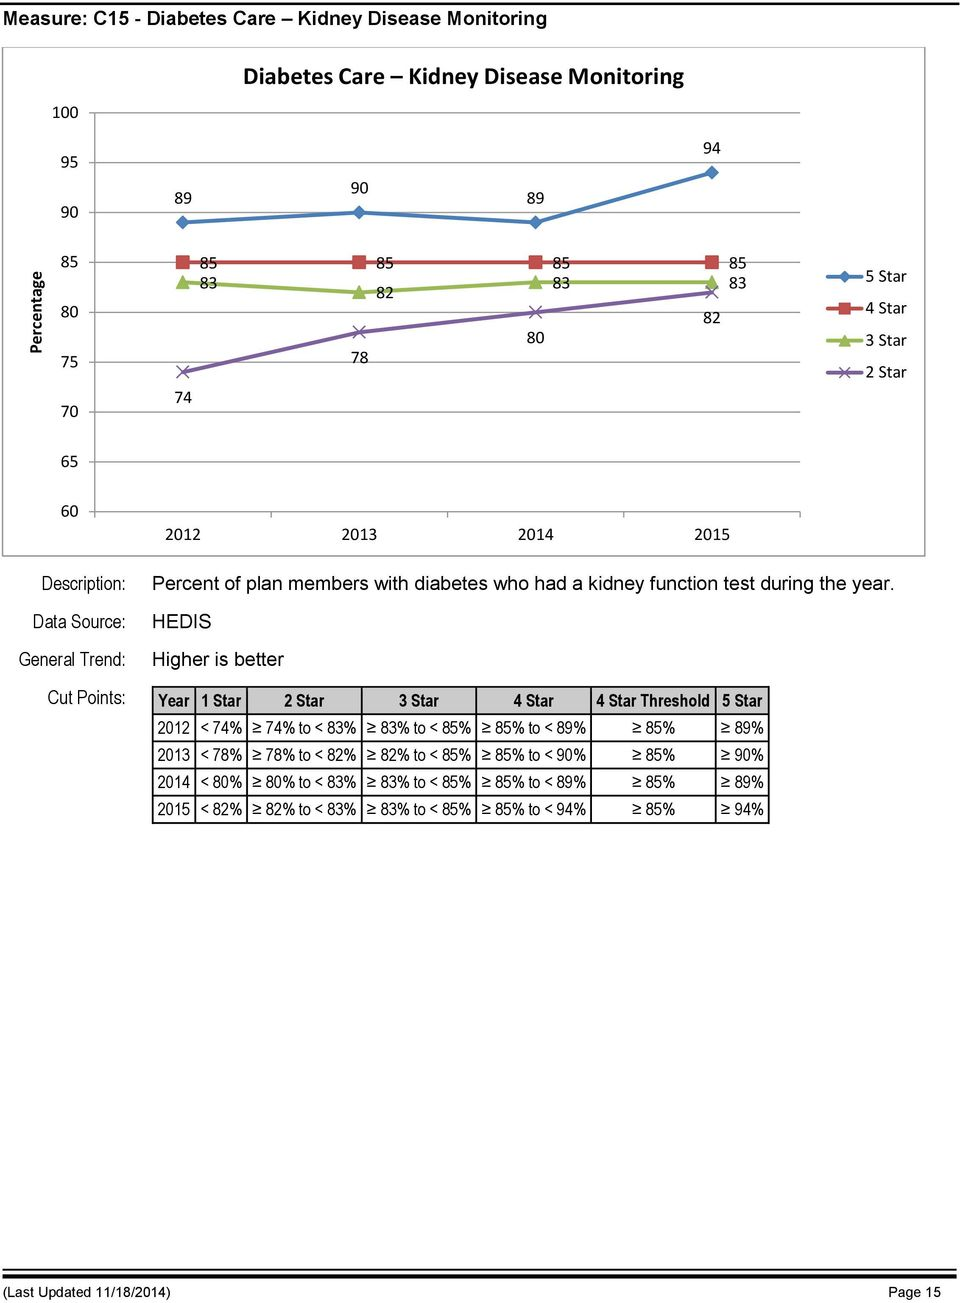 HEDIS Cut Points: Year 1 Star Threshold 2012 < 74% 74% to < 83% 83% to < 85% 85% to < 89% 85% 89% 2013 < 78% 78% to < 82% 82% to <